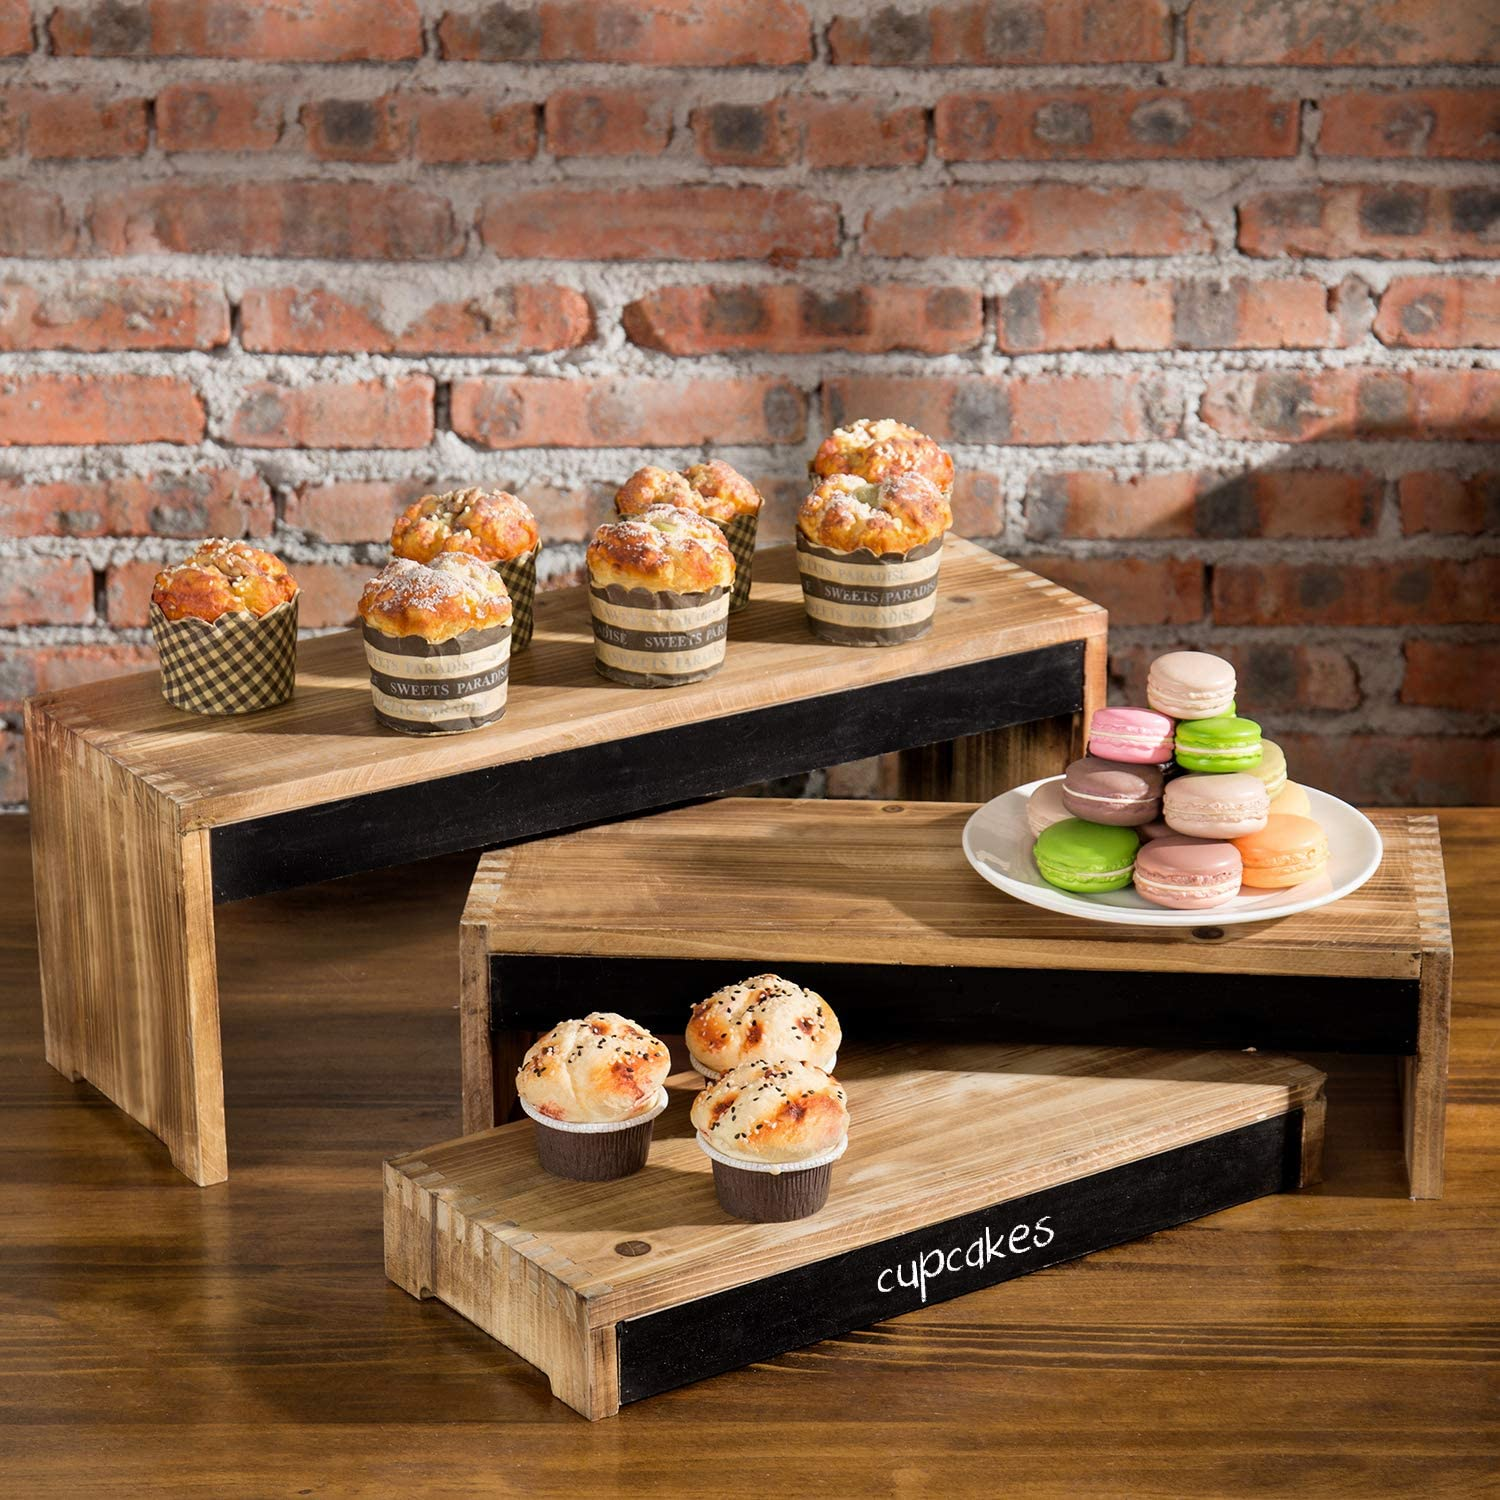 MyGift 3-Tier Rustic Burnt Dark Brown Wood Cake/Dessert Display Riser Stands with Chalkboard Panels